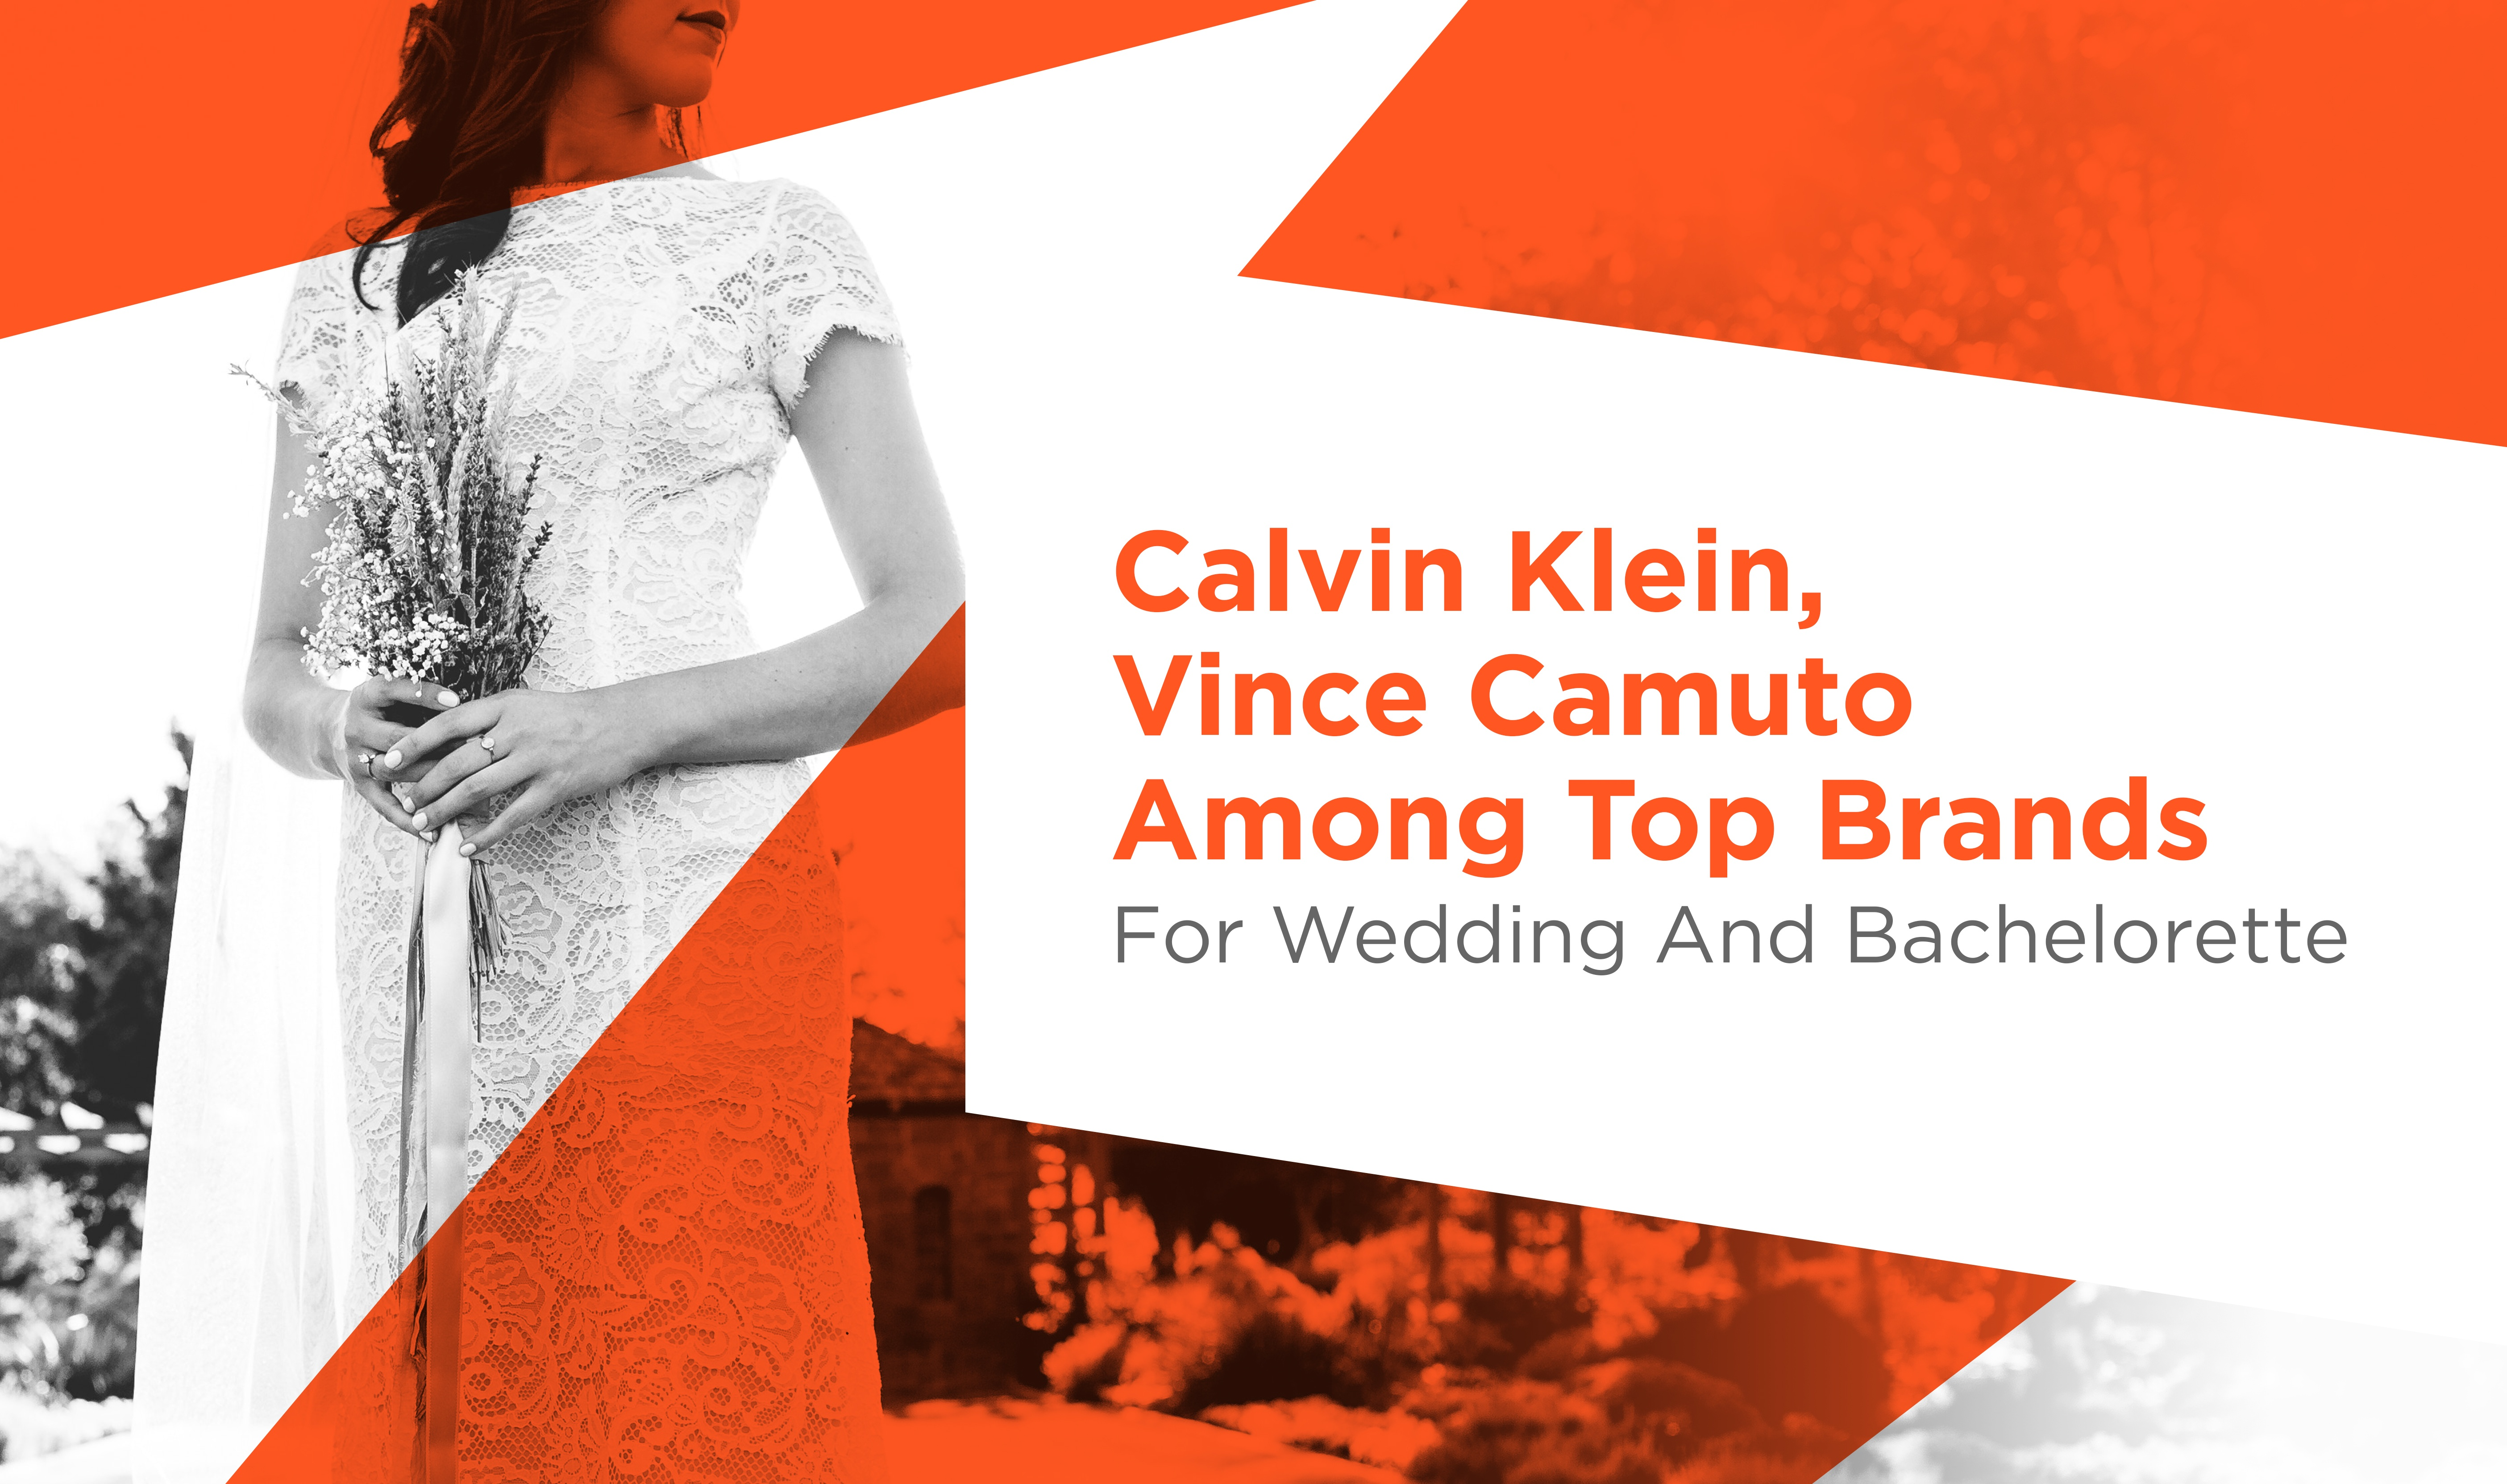 Calvin Klein, Vince Camuto Among Top Brands For Wedding And Bachelorette